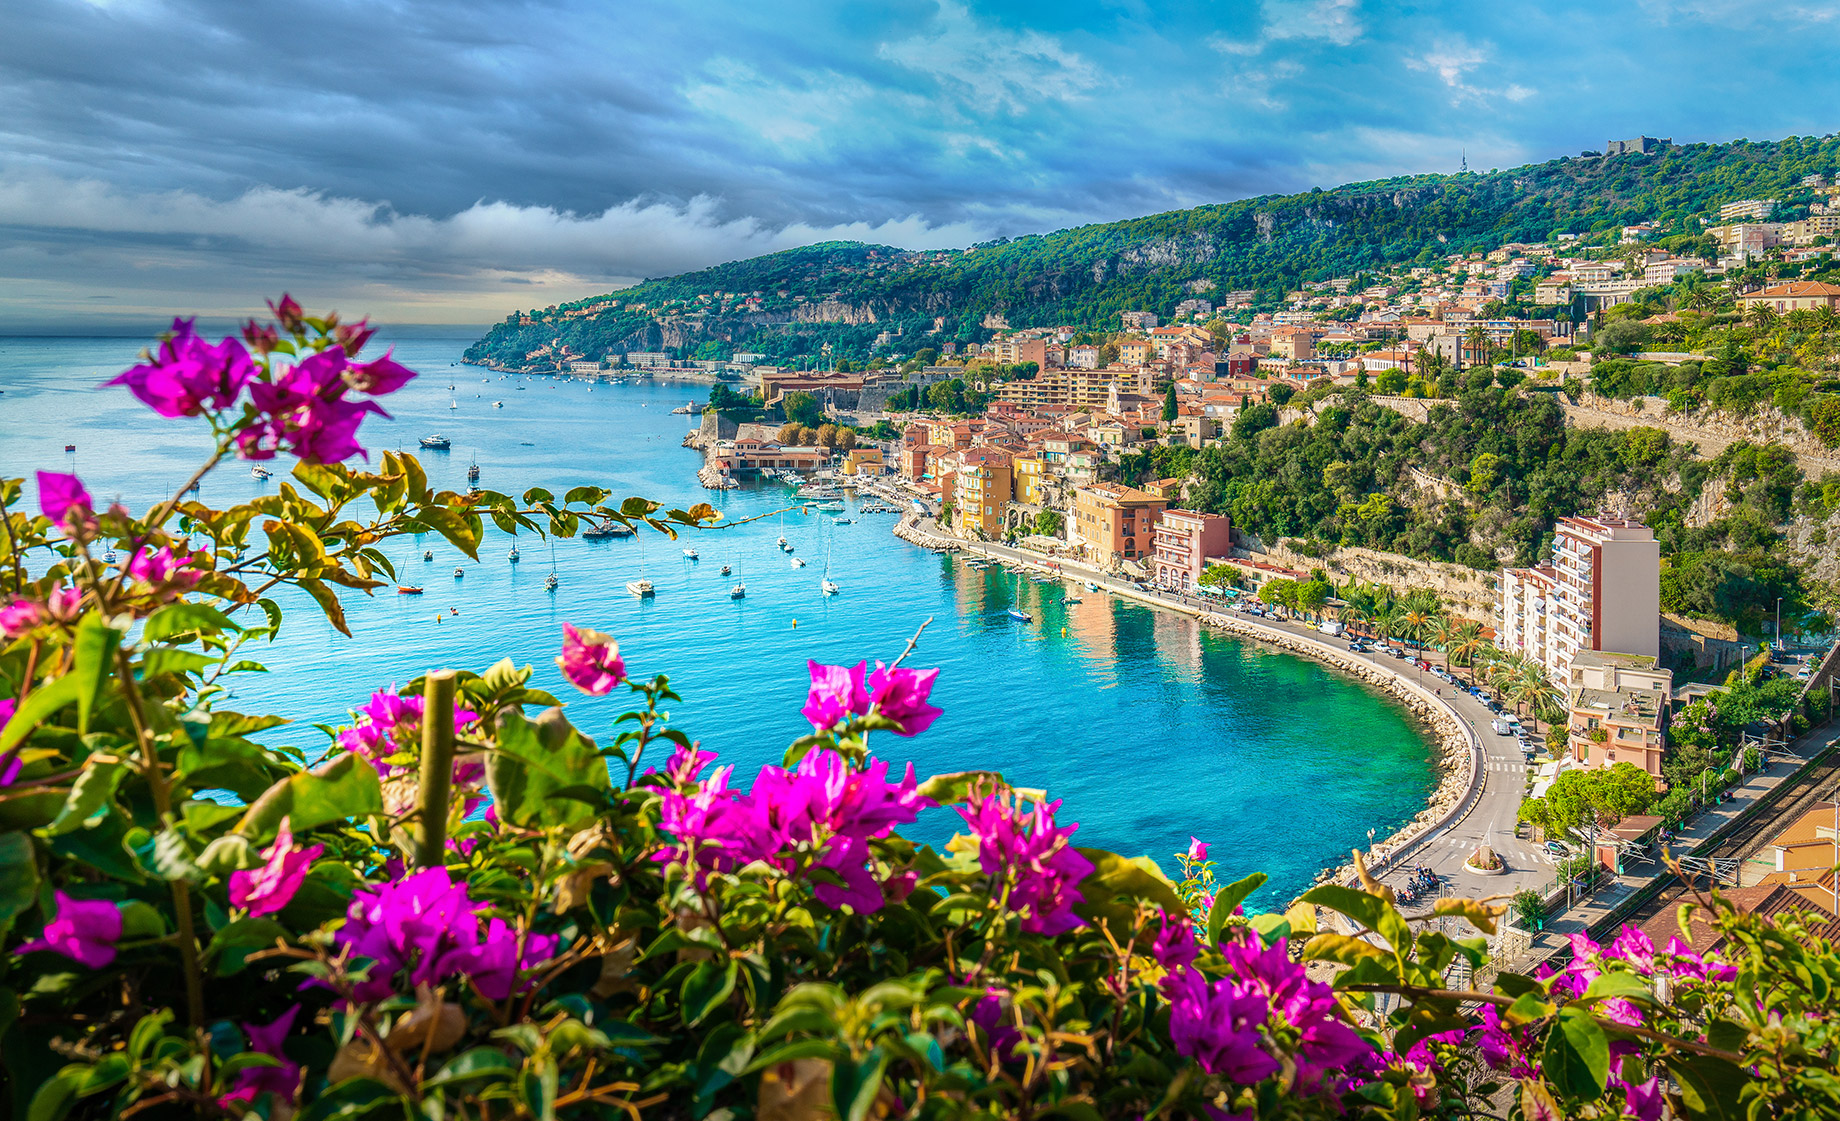 French Riviera - Villefranche-sur-Mer, Nice, Provence-Alpes-Côte d'Azur, France - Top 10 Luxury Travel Destinations Around the World